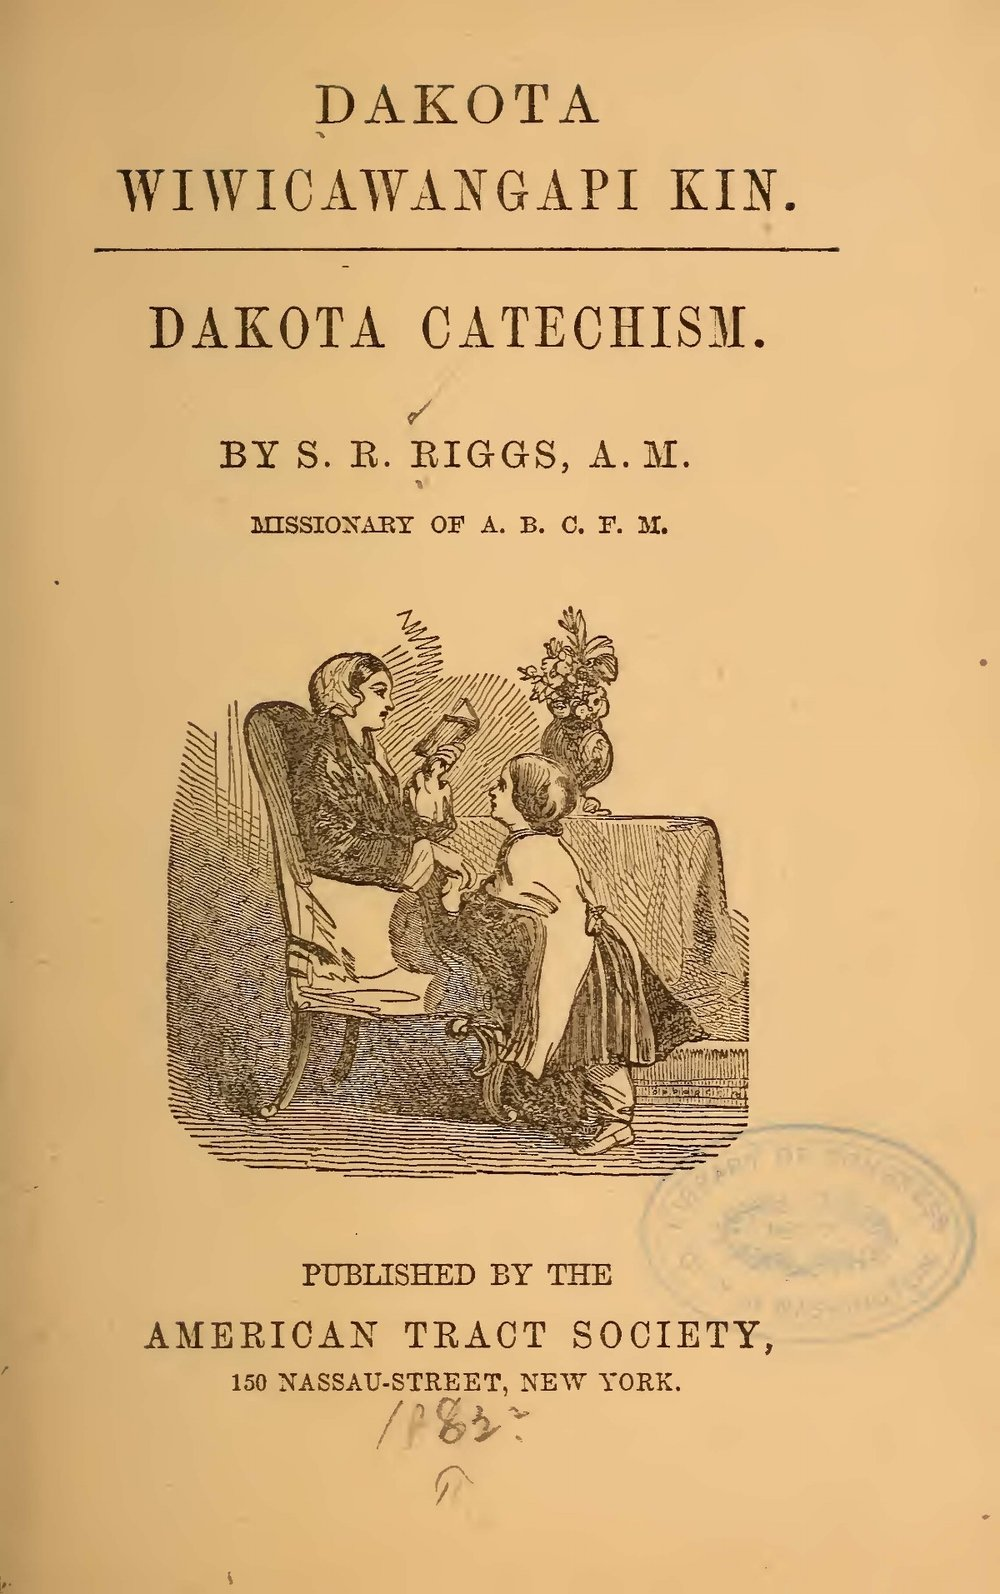 Riggs, Stephen Return, Dakota Wiwicawangapi Kin Dakota Catechism Title Page.jpg